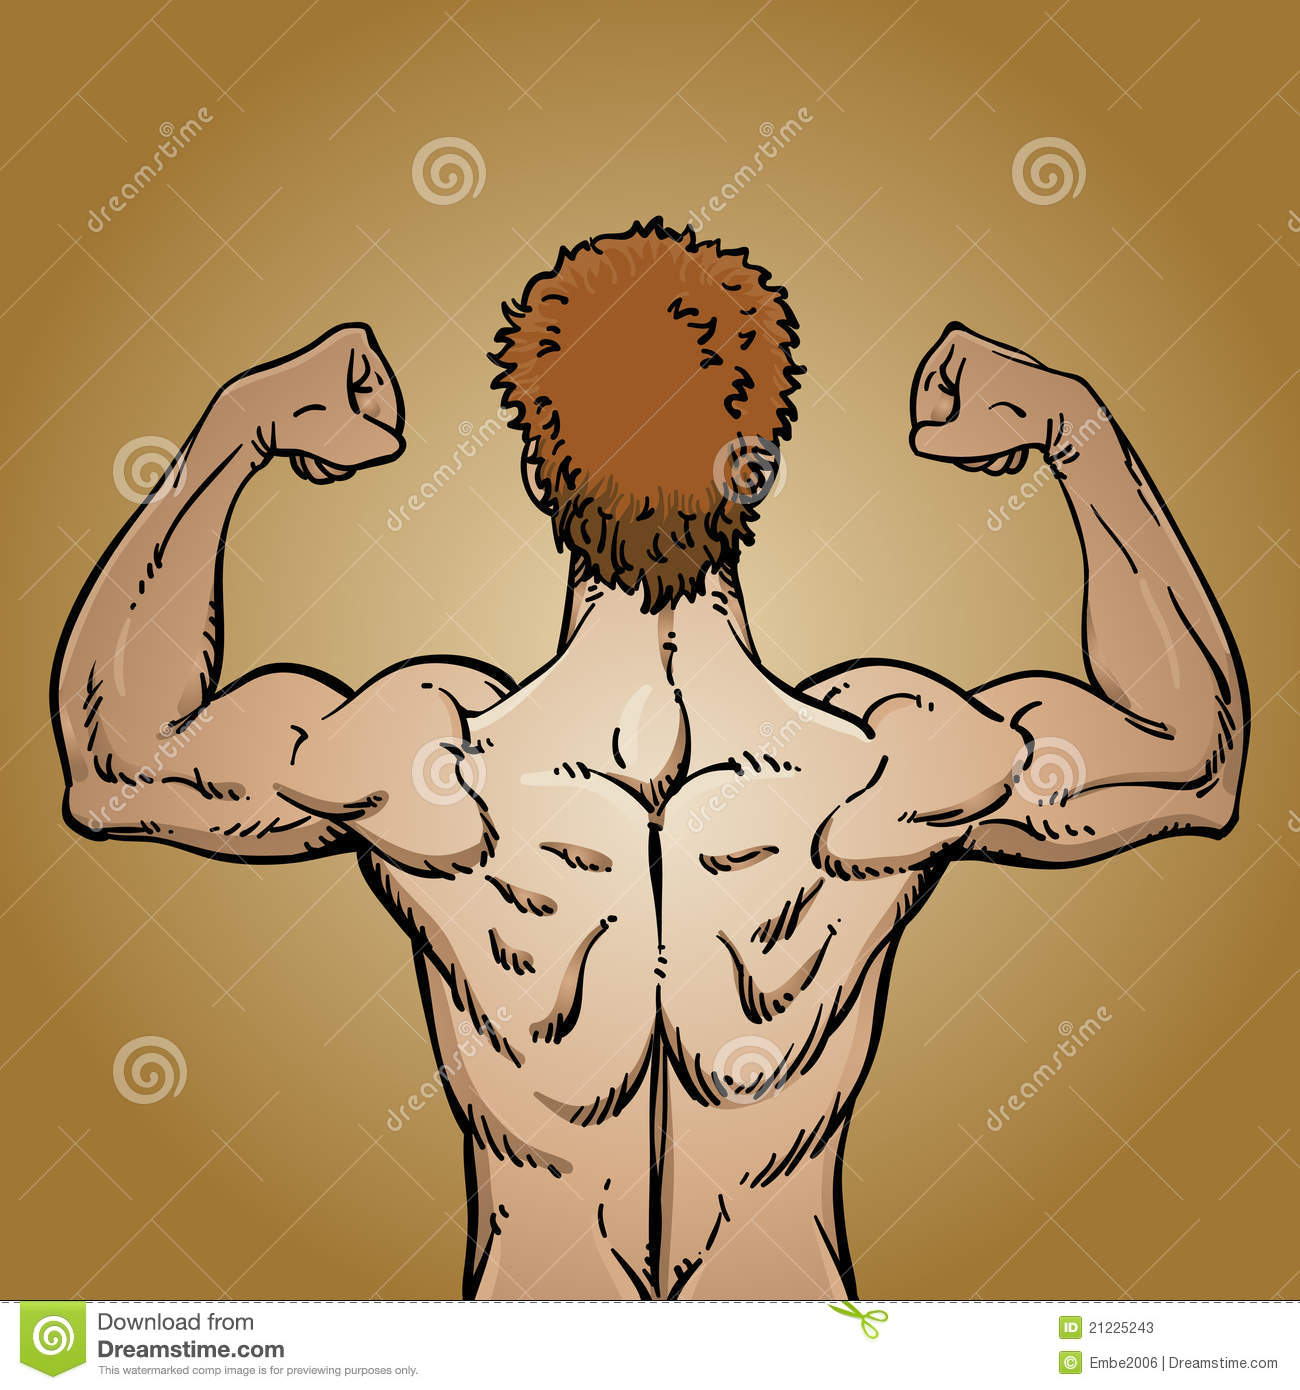 Man Flexing Muscles Stock Vector Illustration Of Anatomy 21225243